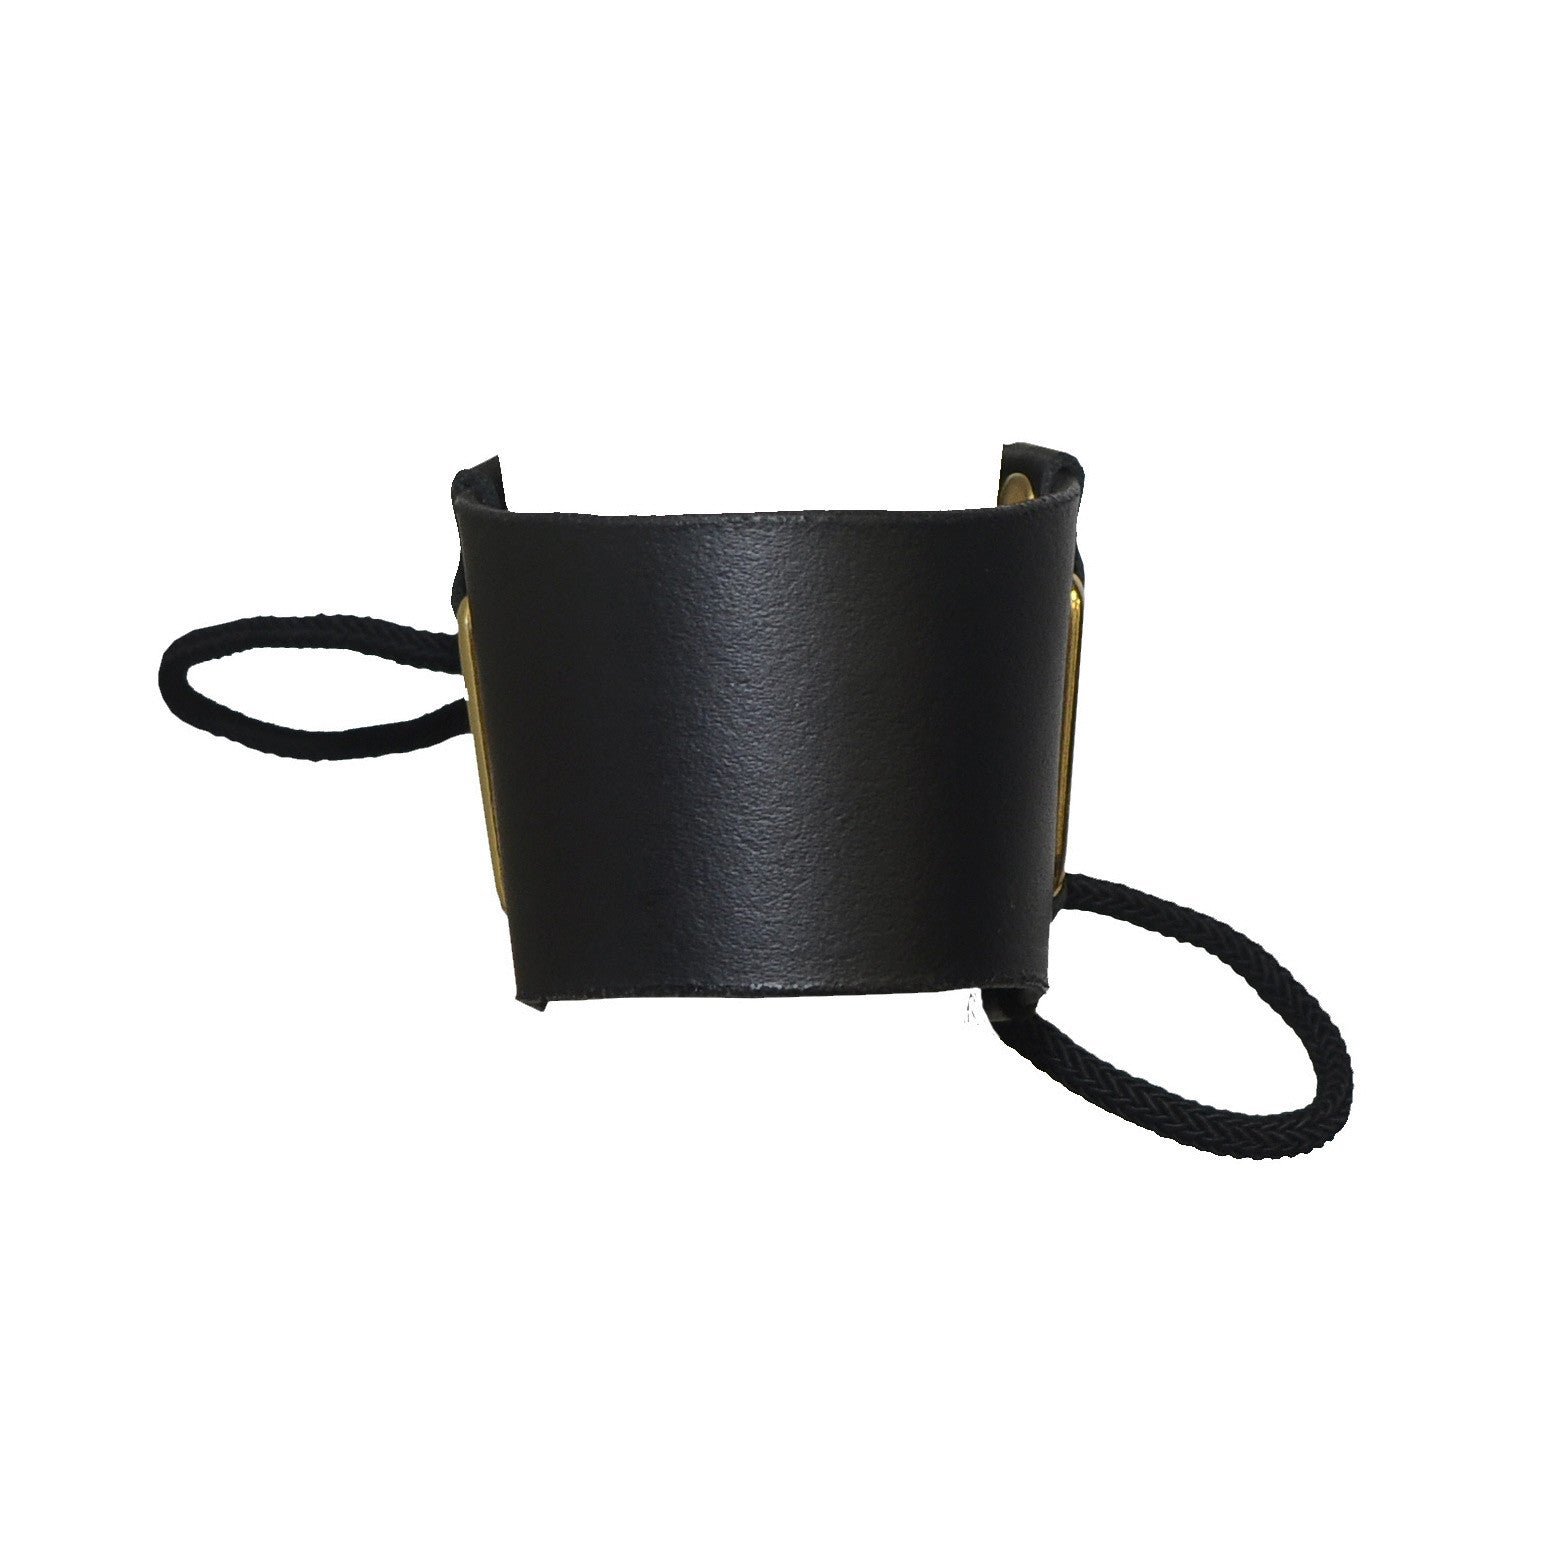 Siren leather cuff by DSTM